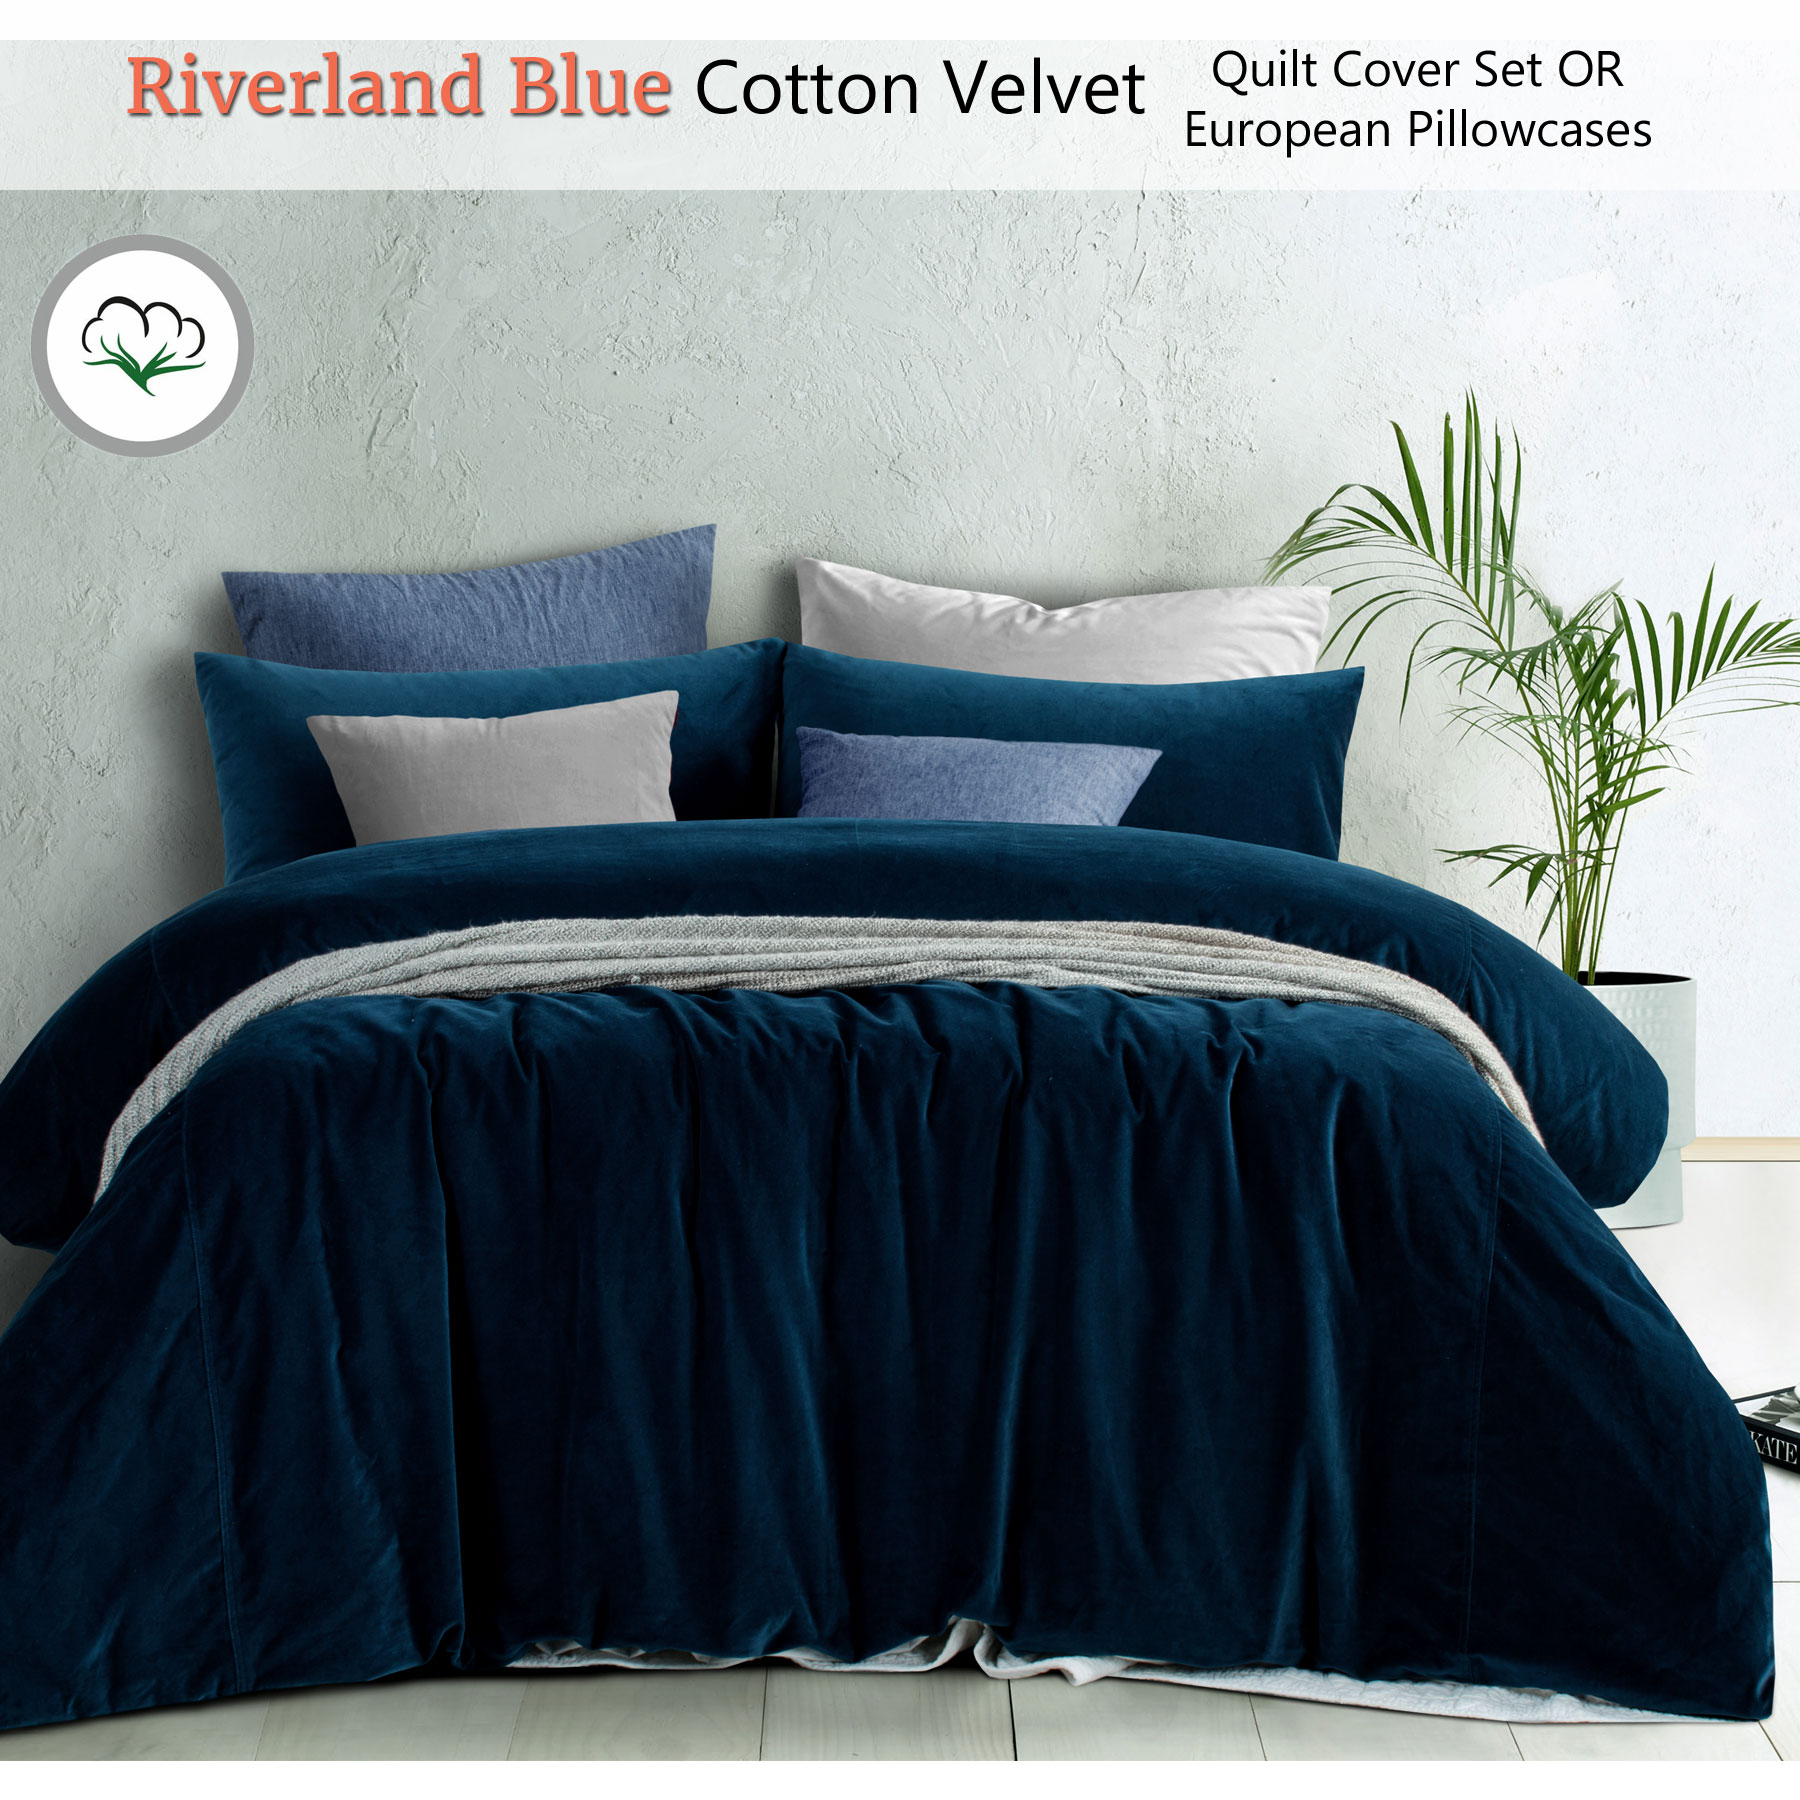 Before And After Merging Two Rooms Has Created A Super: Riverland Blue Cotton Velvet Quilt Cover Set OR Eurocases